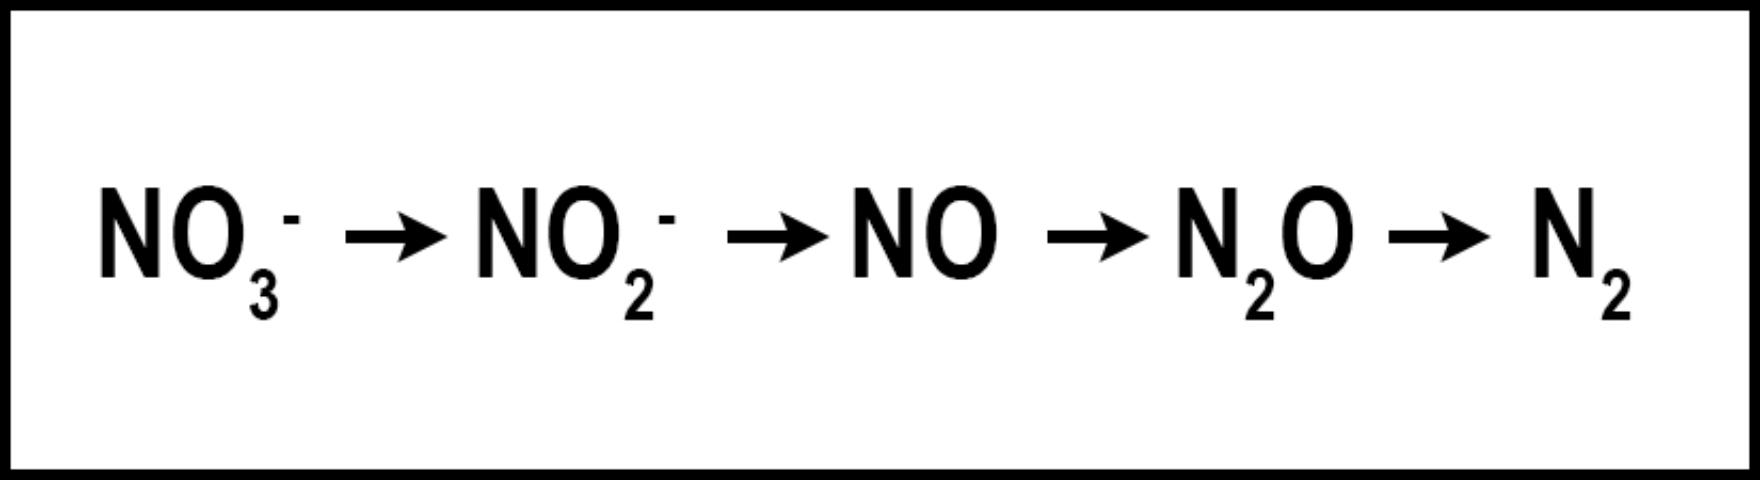 Figure 3. Denitrification - NO3-N is subject to reduction by soil microbes, leading to N2.